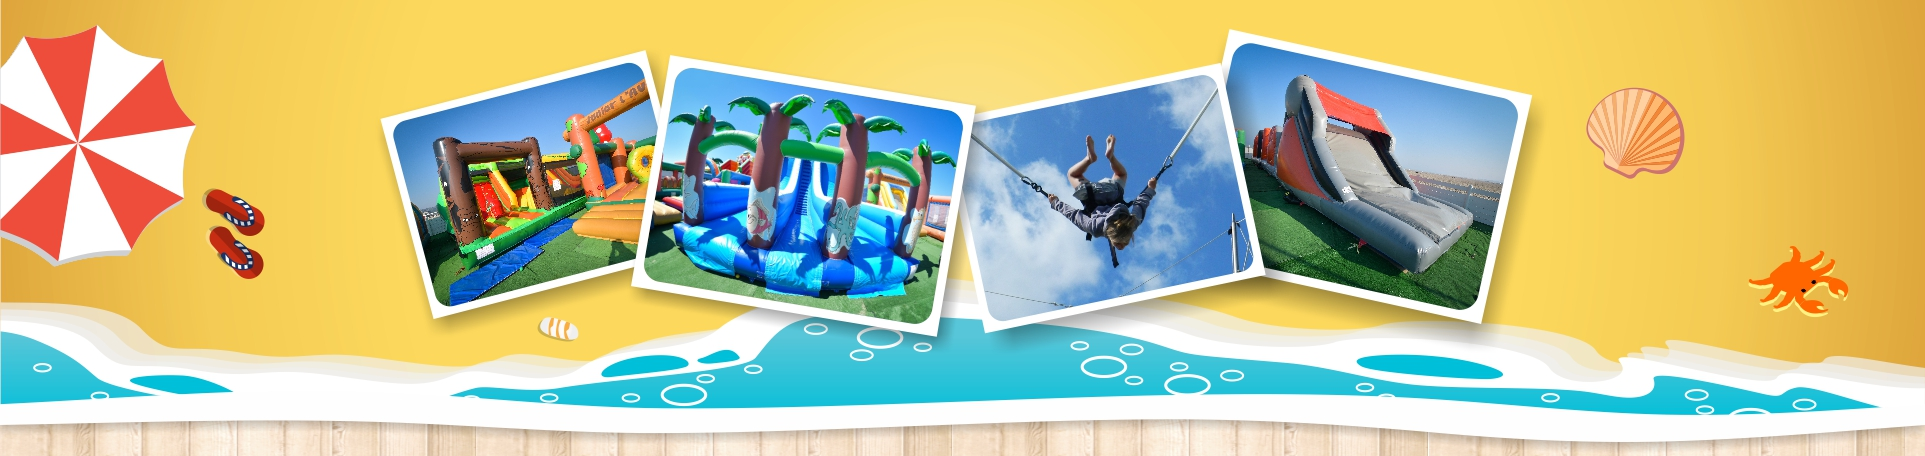 parc attractions enfants loisirs famille trampolines gonflables normandie